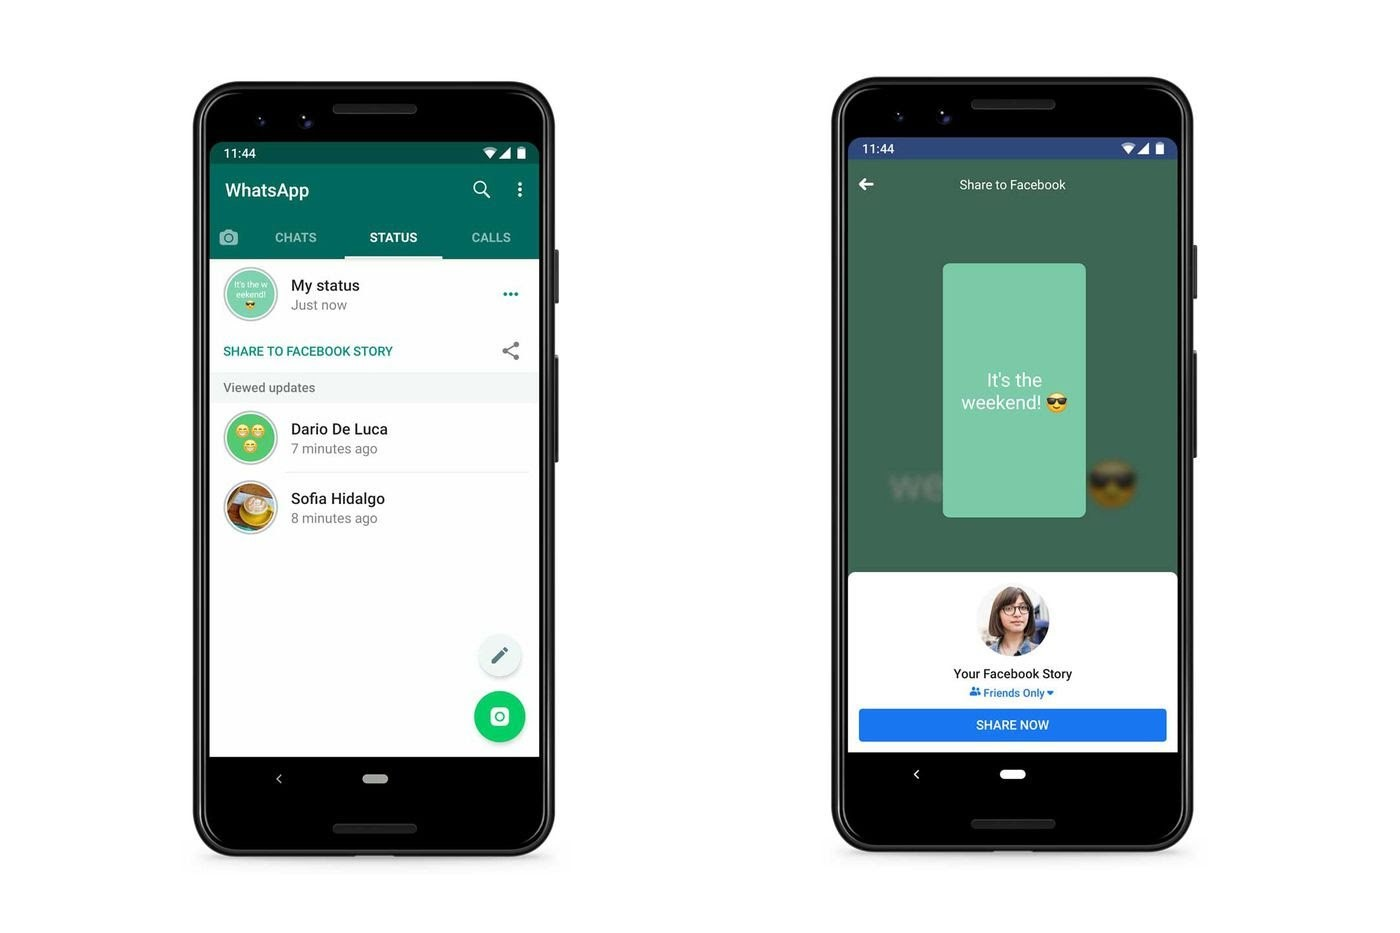 WhatsApp Testing Feature That Shares Your Stories To Facebook, Gmail And More